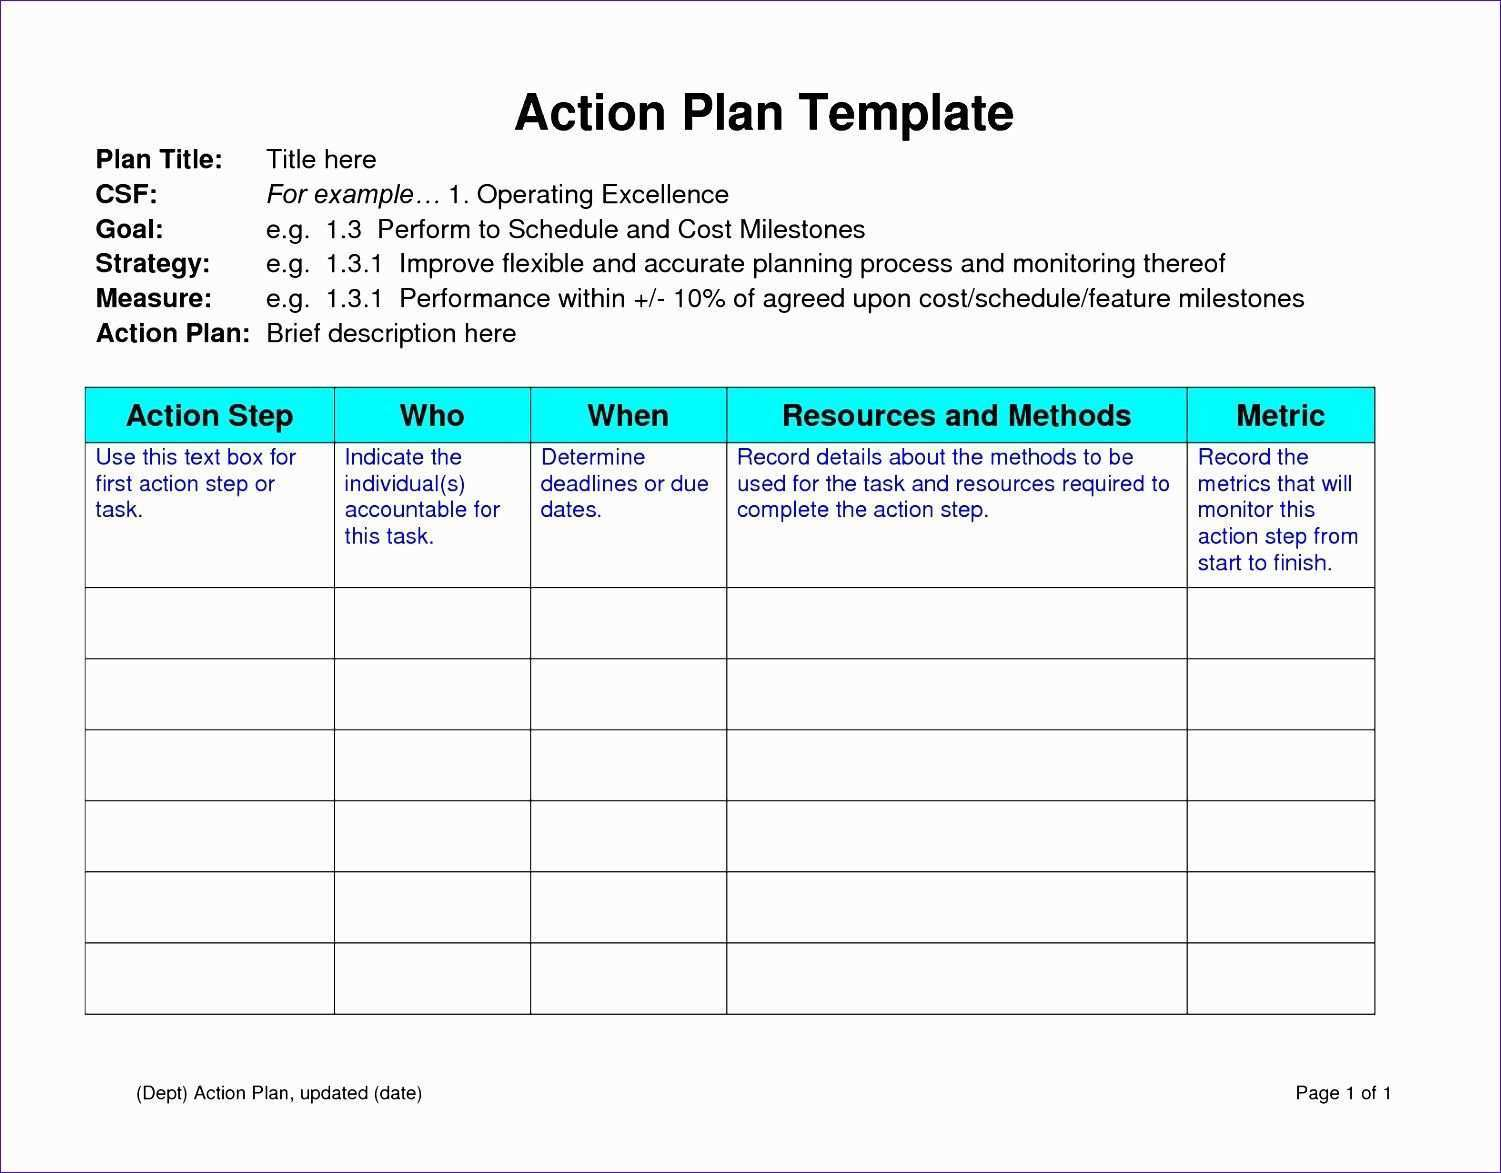 Performance Improvement Plan Template Excel Beautiful 12 Sample Action Plan Template Excel Simple Business Plan Template Action Plan Template Smart Action Plan